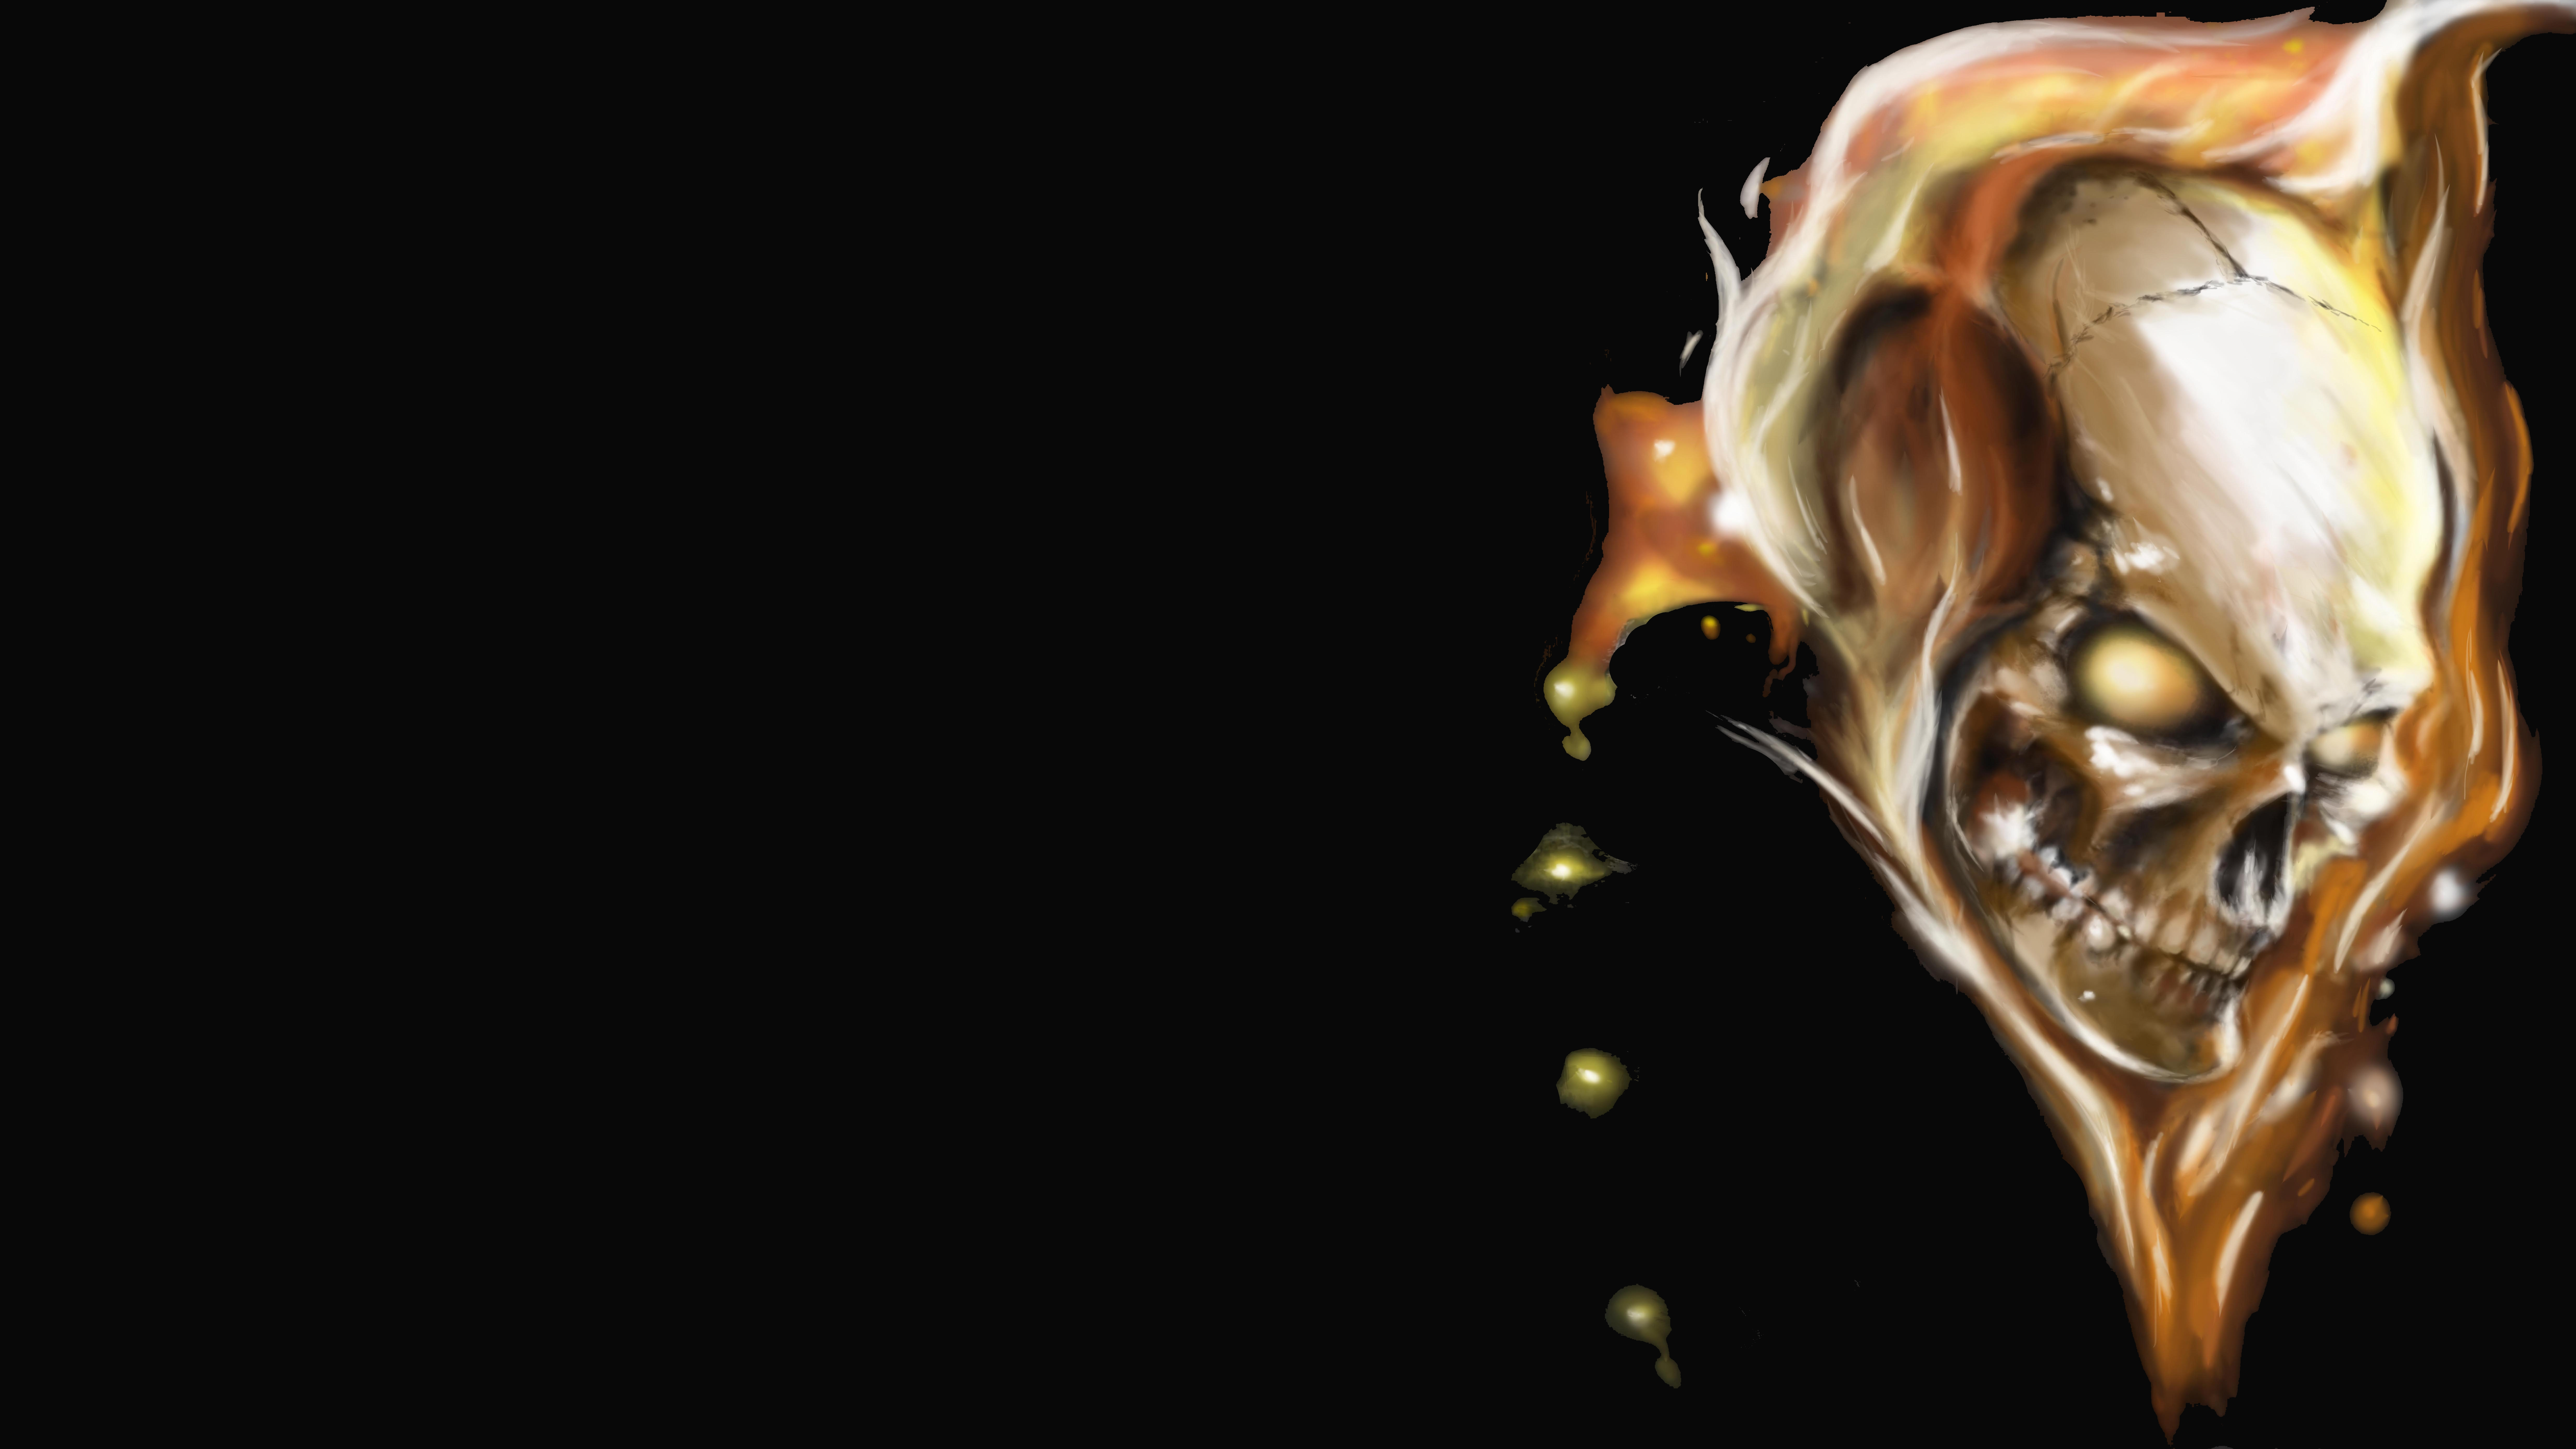 142 ghost rider hd wallpapers | background images - wallpaper abyss